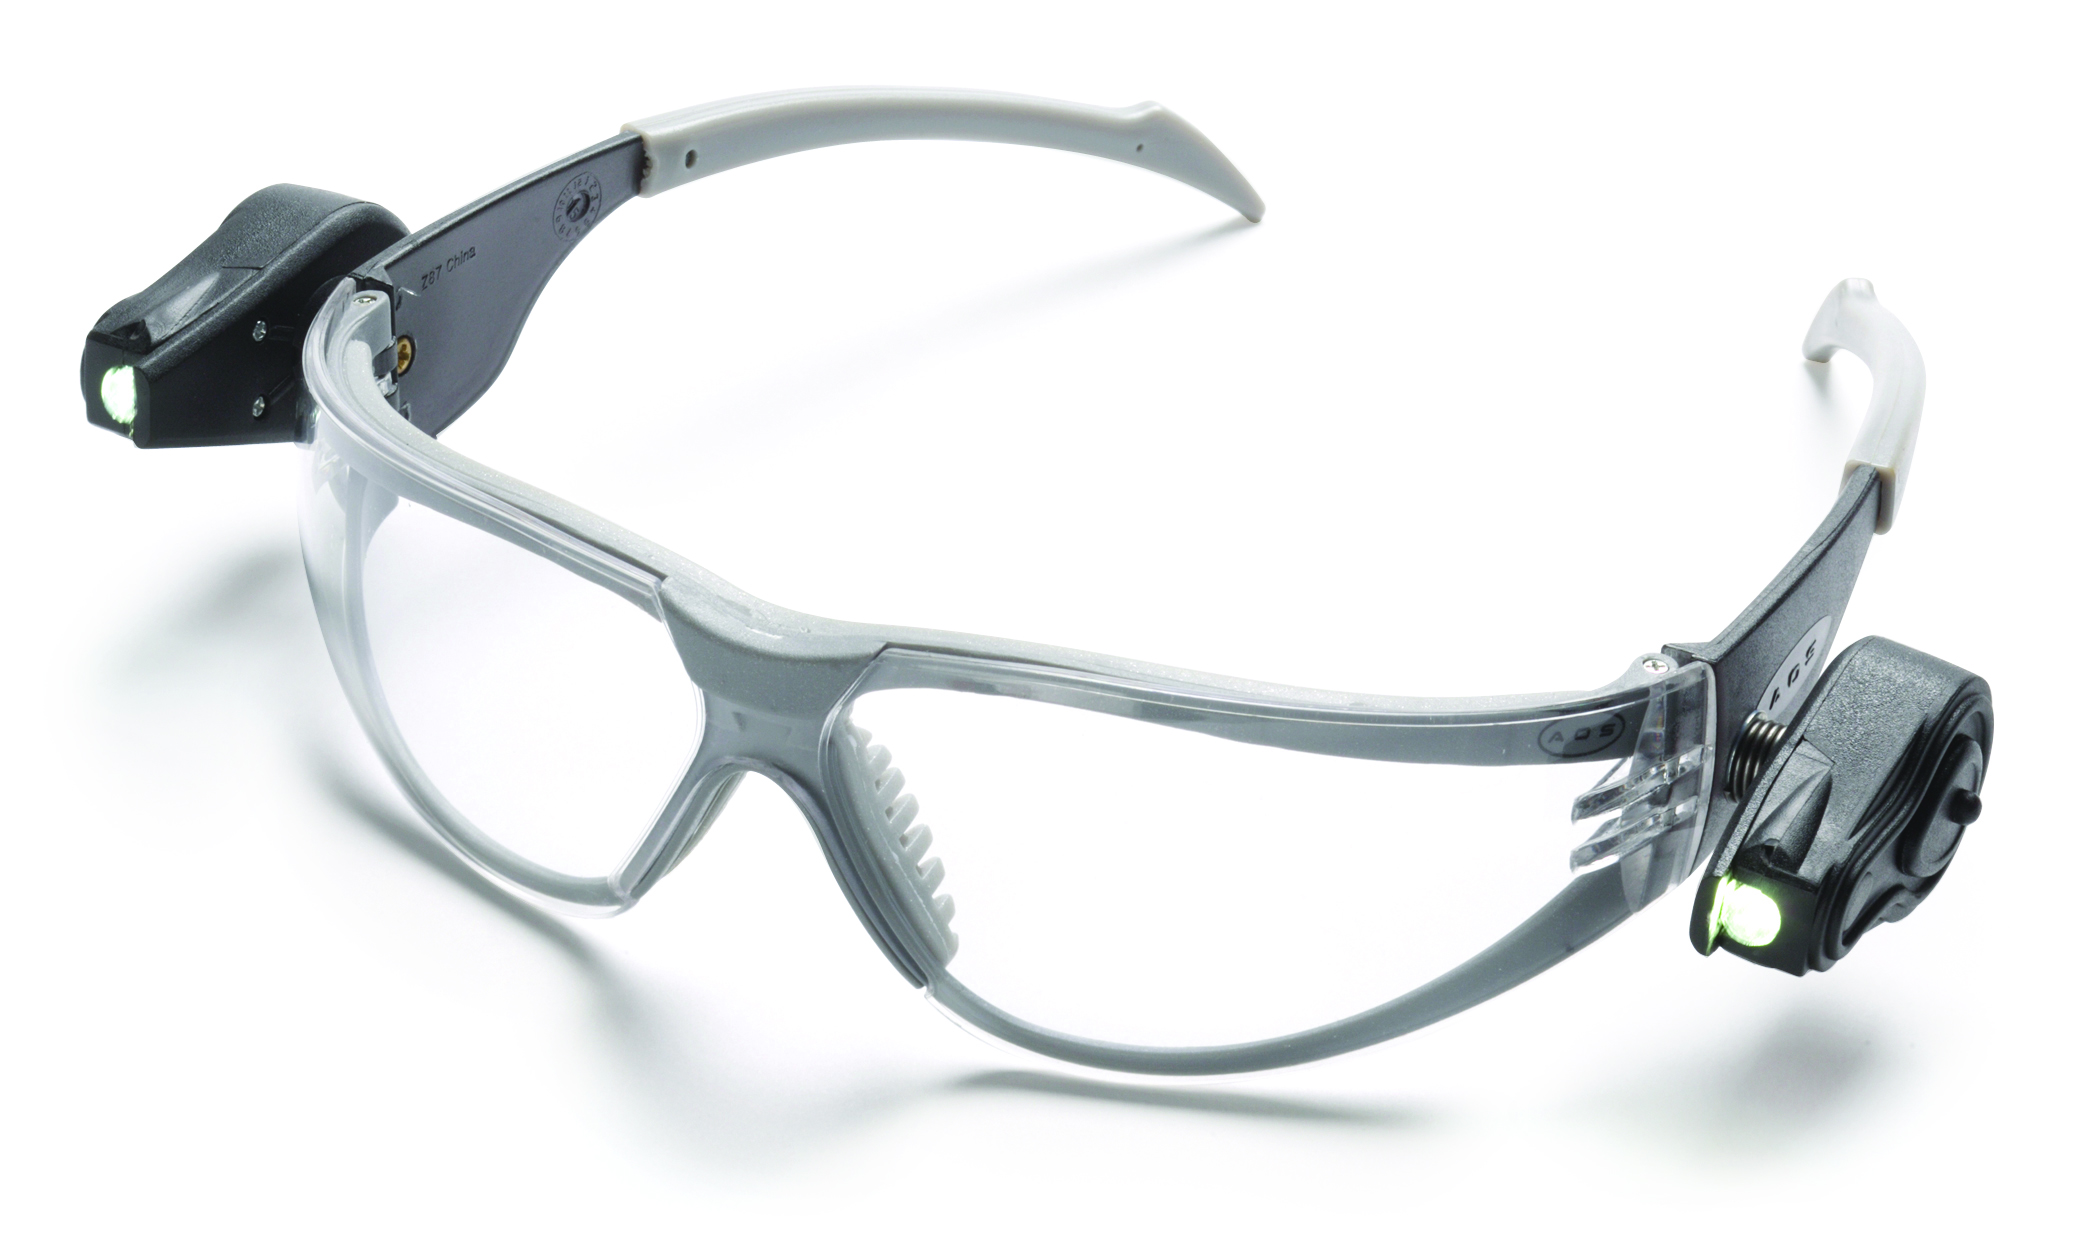 11356-00000-10 - 3M™ Light Vision™ and Light Vision2™ Safety Eyewear with LED Lights-Light Vision™, Gray Temple, Clear Lens-----UOM: 1/EA